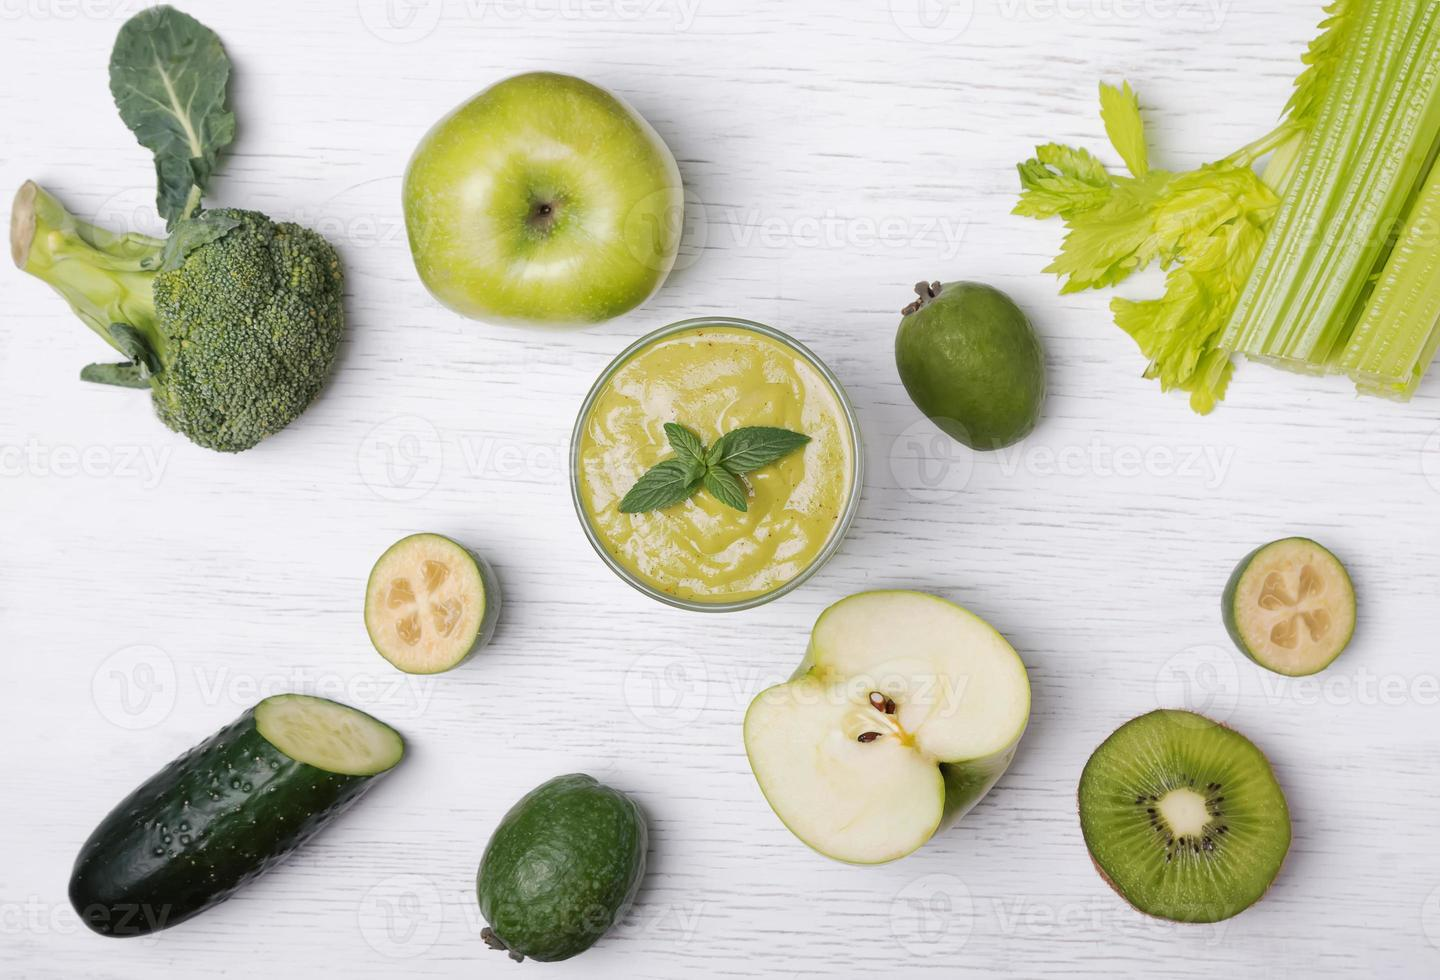 Green colored fruits and vegetables photo